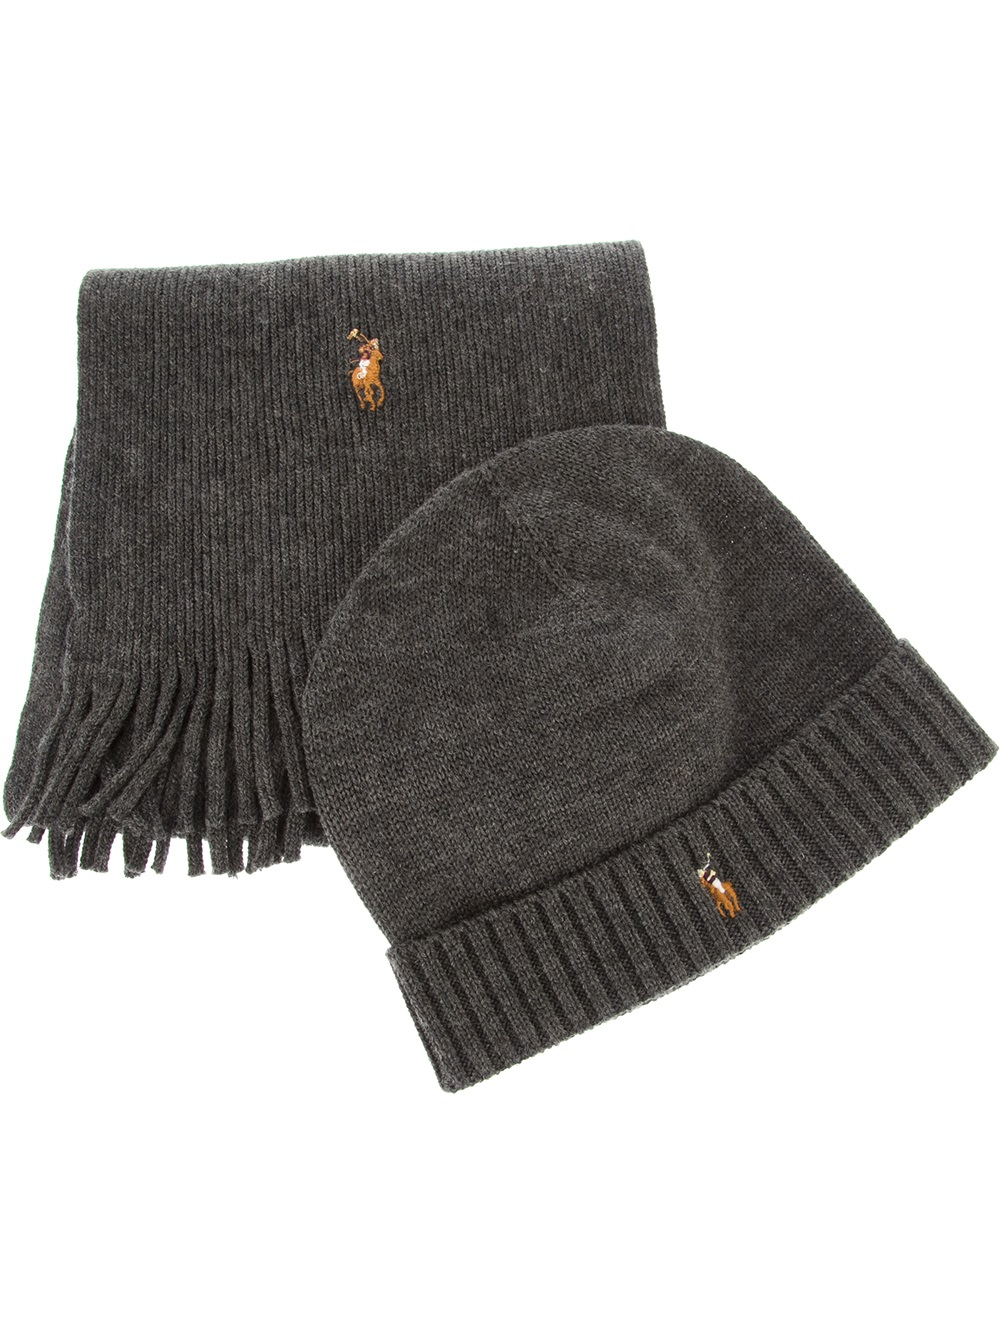 951fbbace4461 ... usa lyst polo ralph lauren ribbed scarf and hat set in gray for men  f7de7 2cfdf